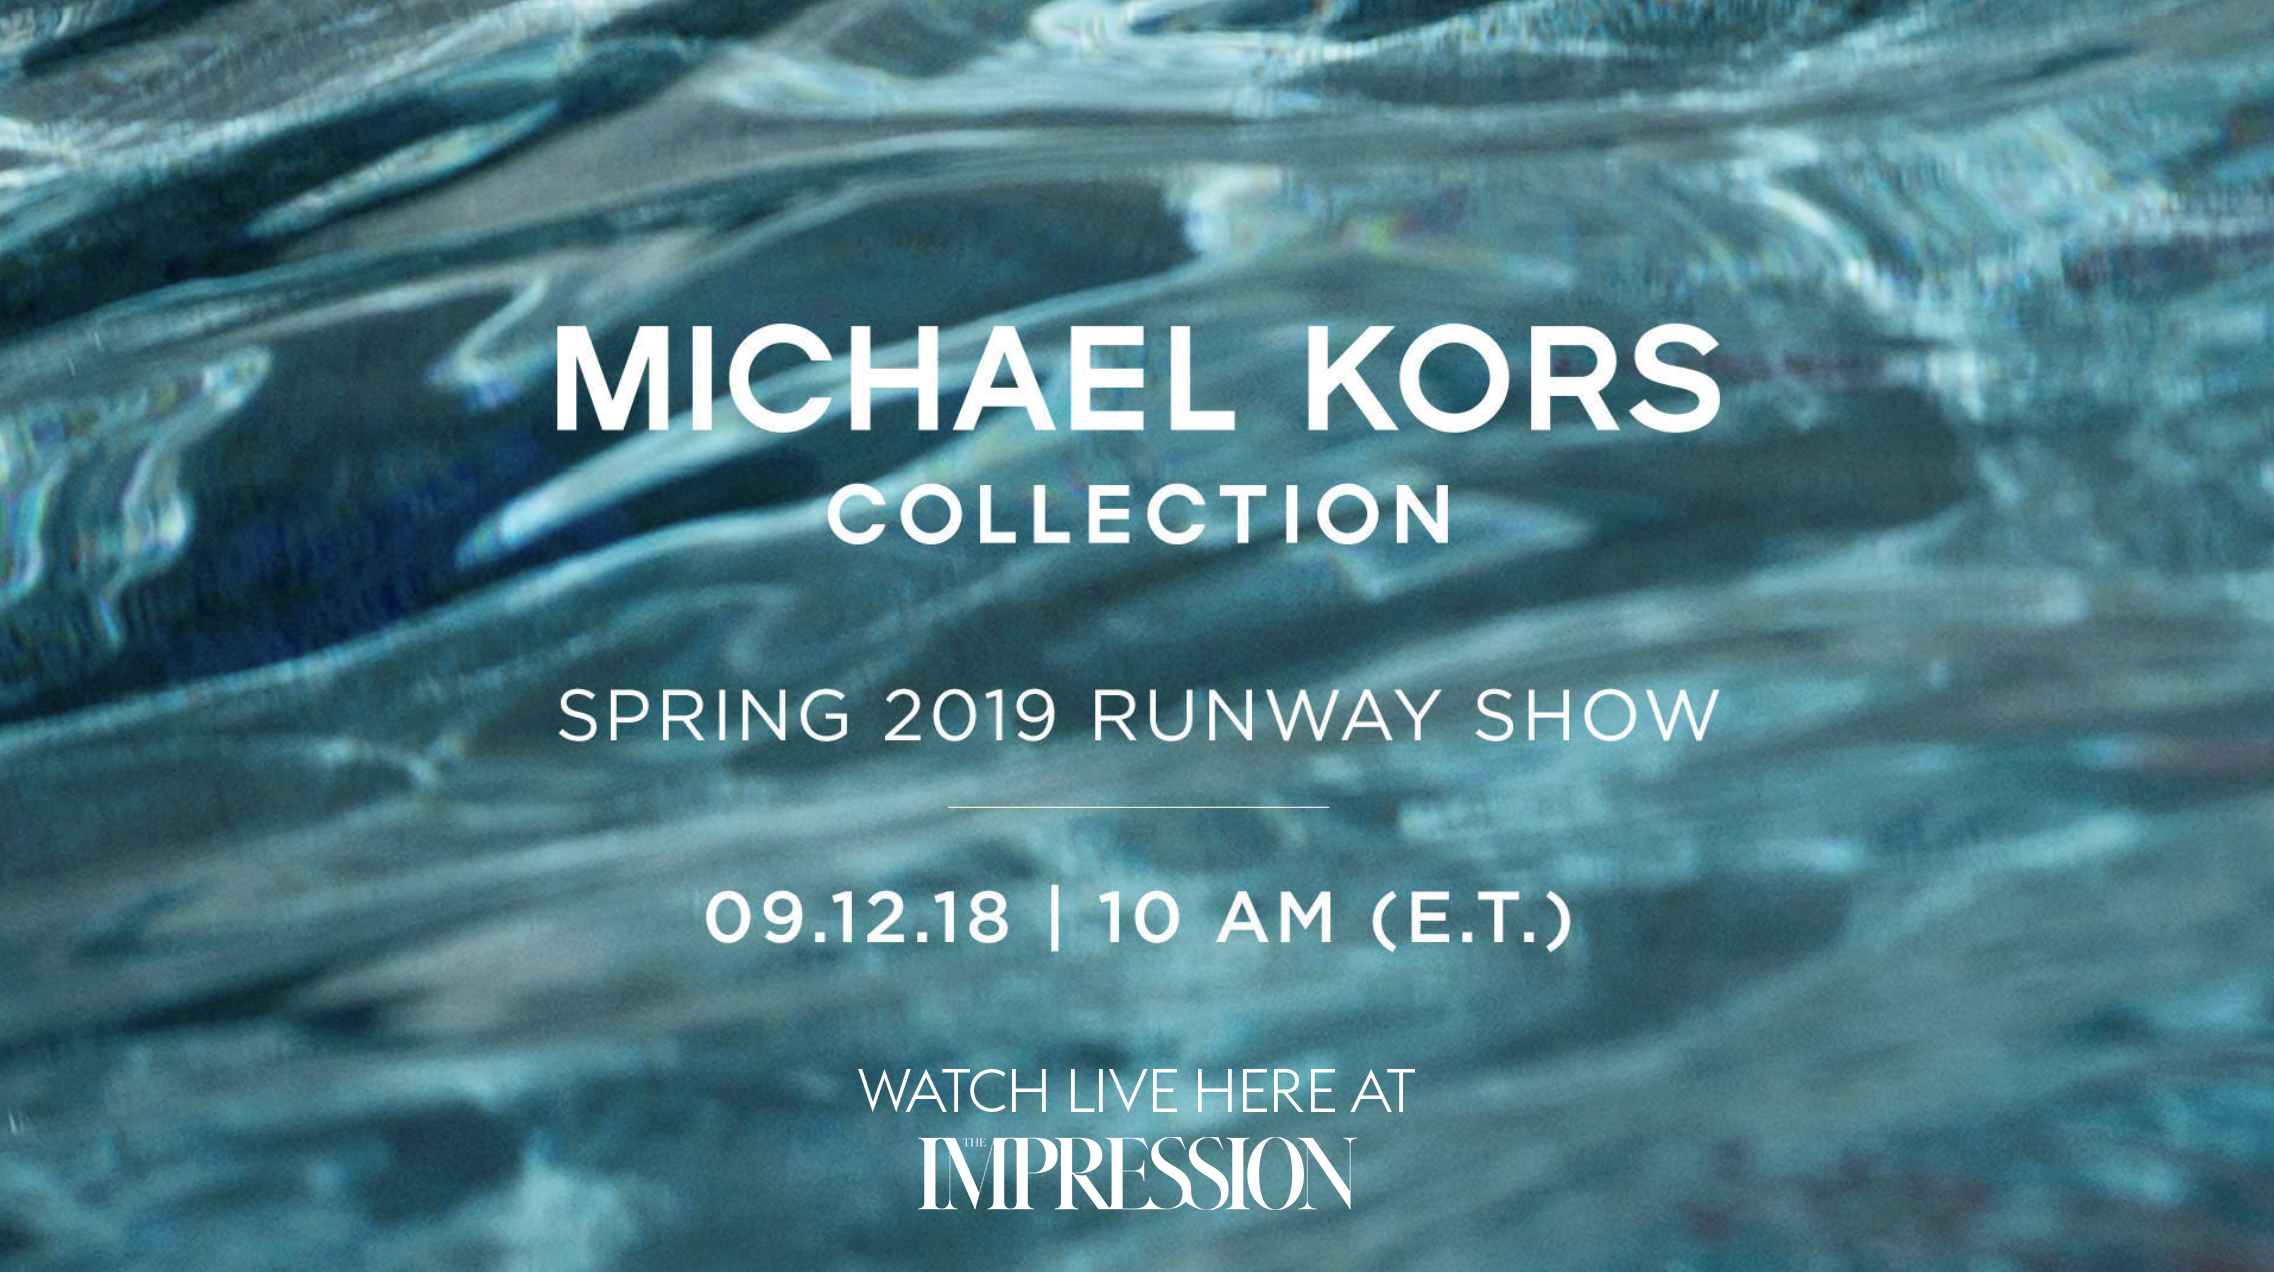 Watch the Michael Kors Spring 2019 Runway Show Live